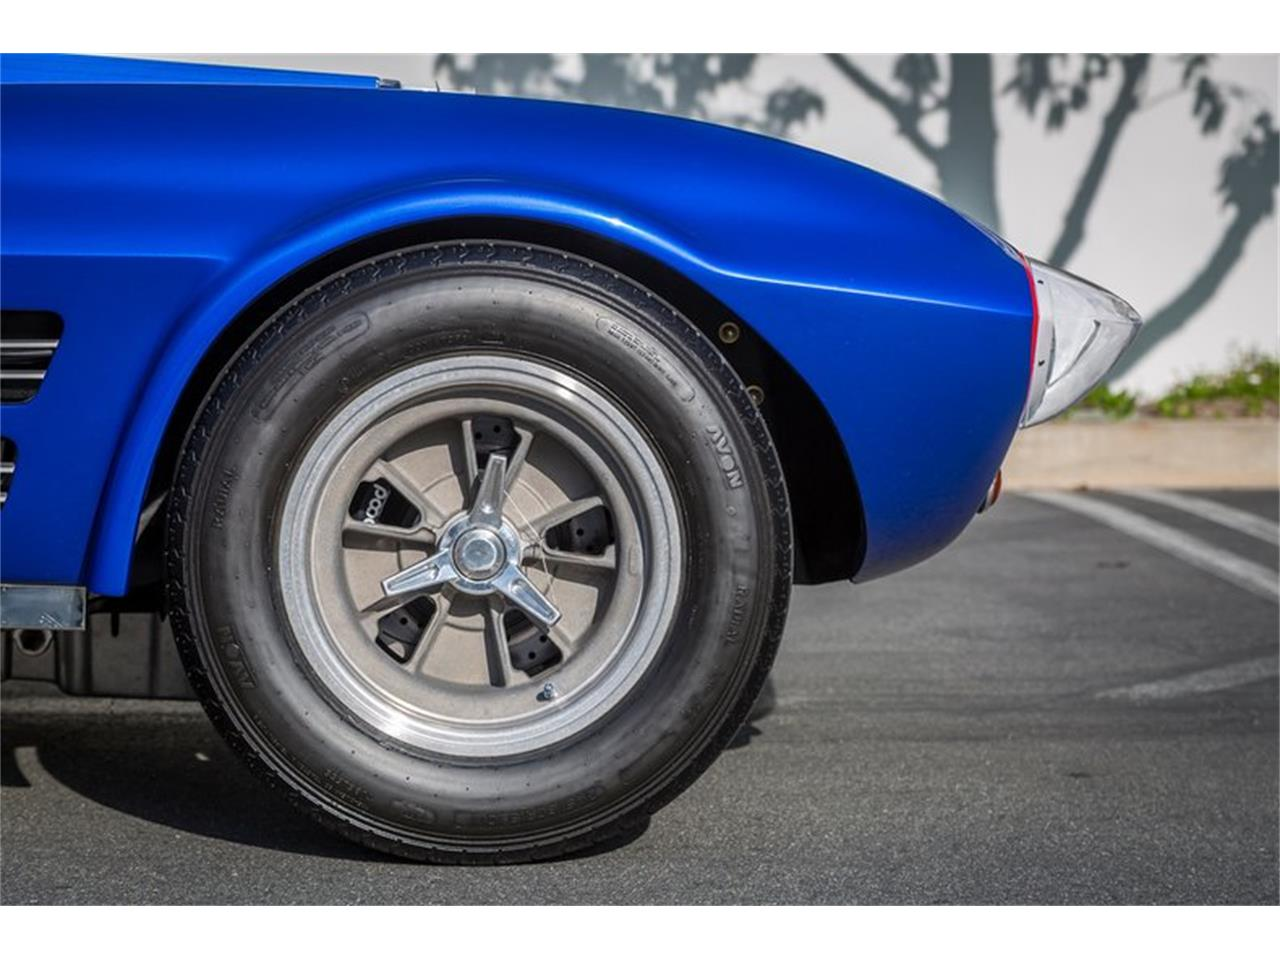 1963 Superformance Corvette Grand Sport for sale in Irvine, CA – photo 18